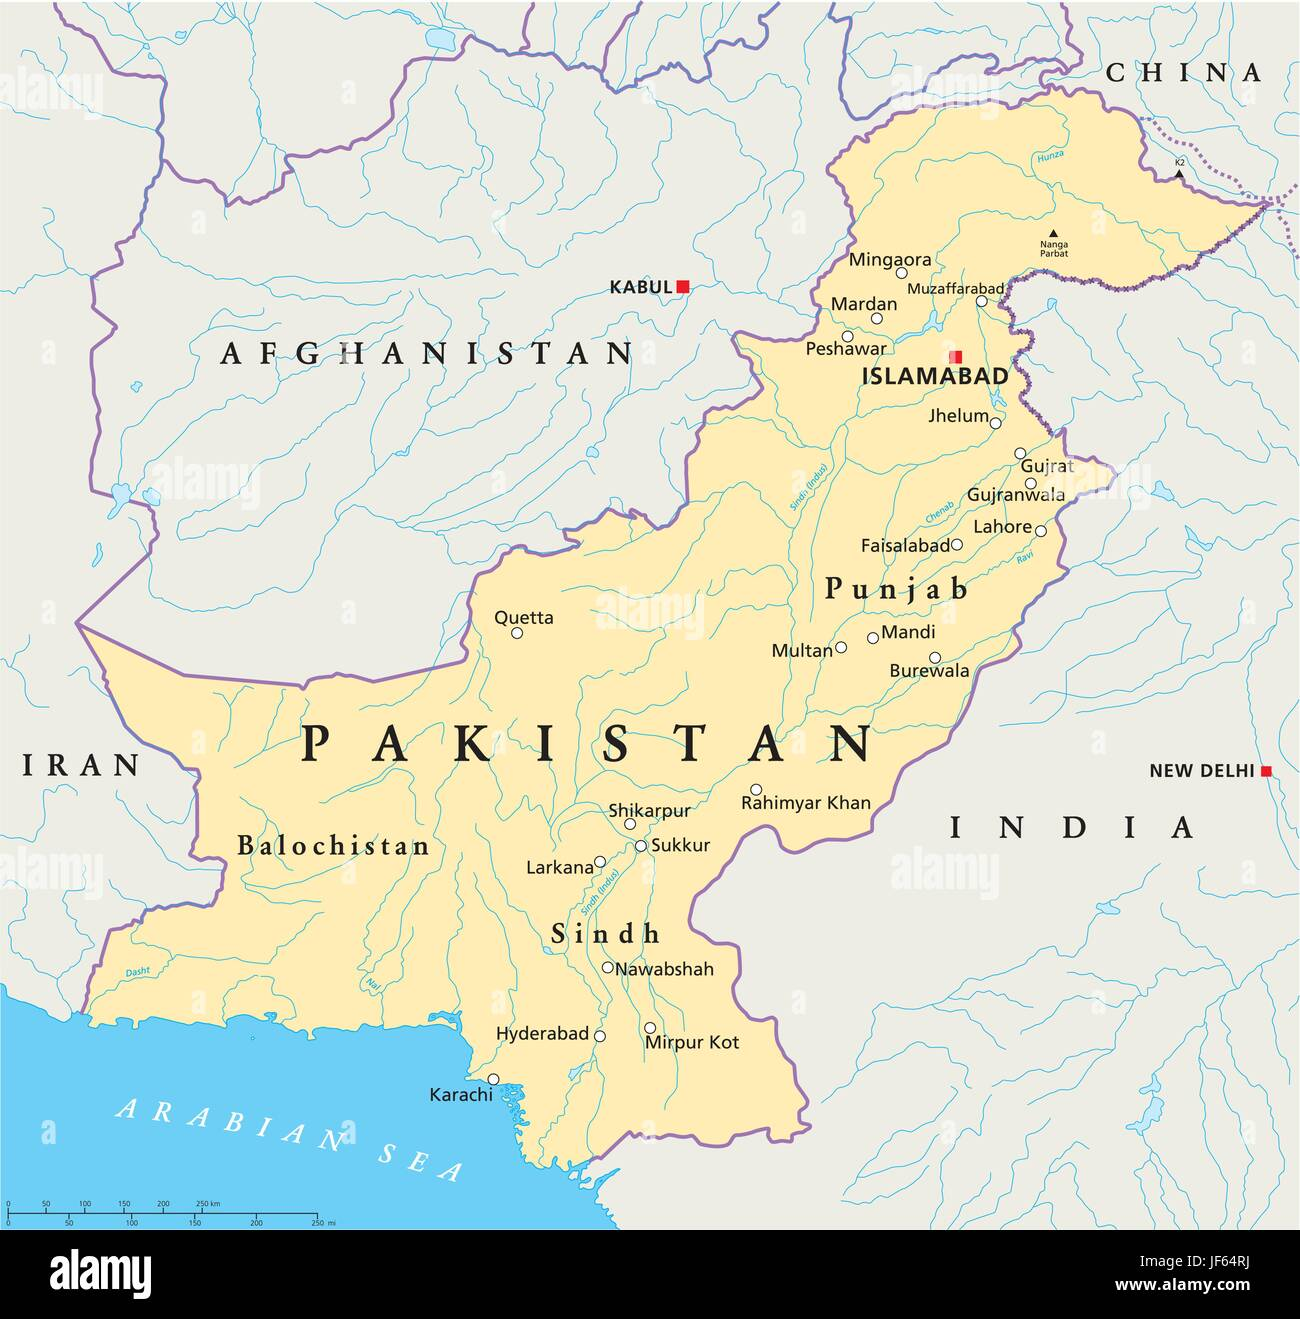 map of pakistan showing deserts Pakistan Map Atlas Map Of The World Travel Desert Wasteland map of pakistan showing deserts